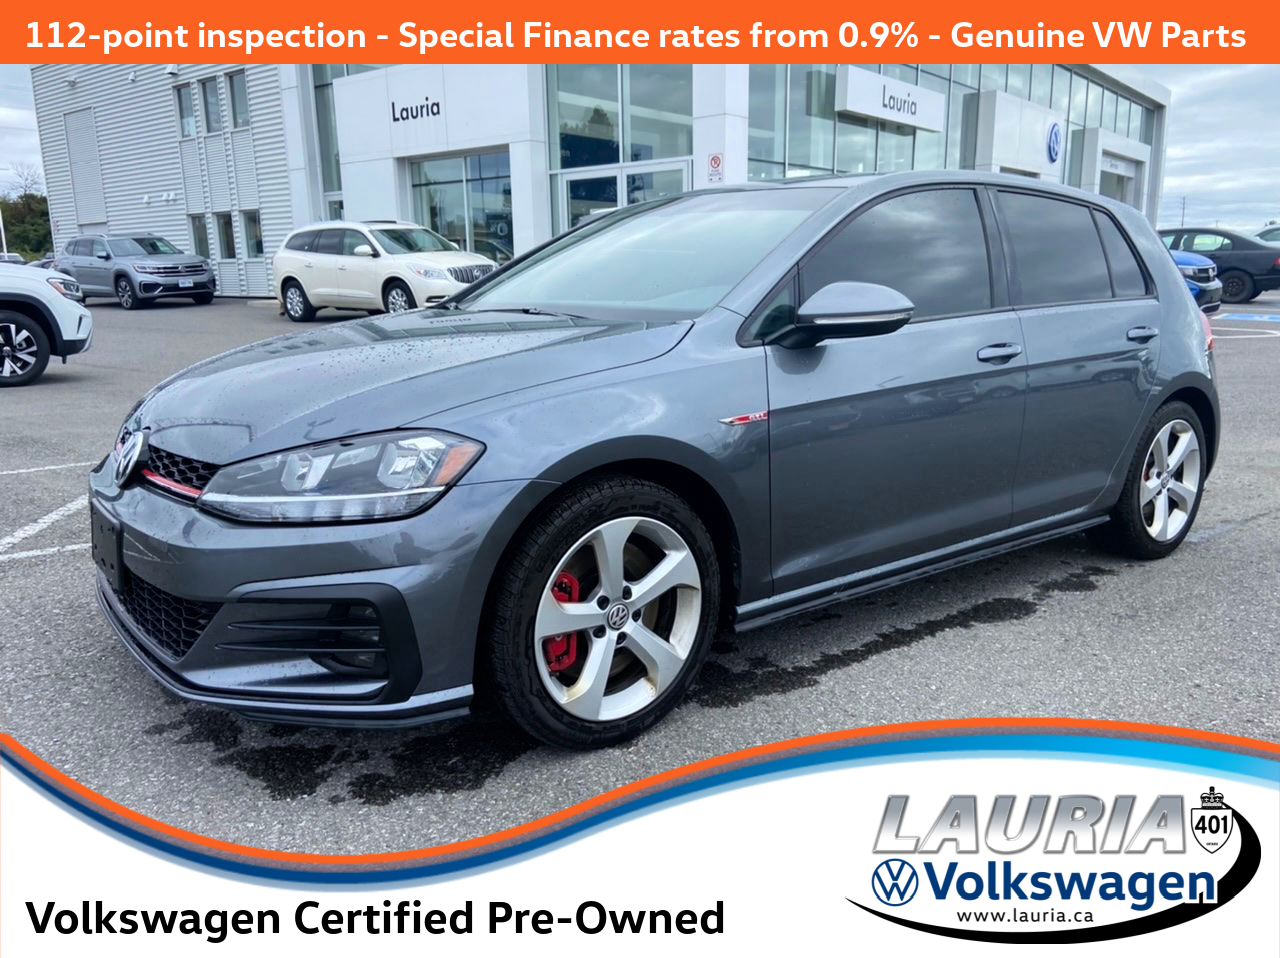 used 2018 Volkswagen Golf GTI car, priced at $25,888